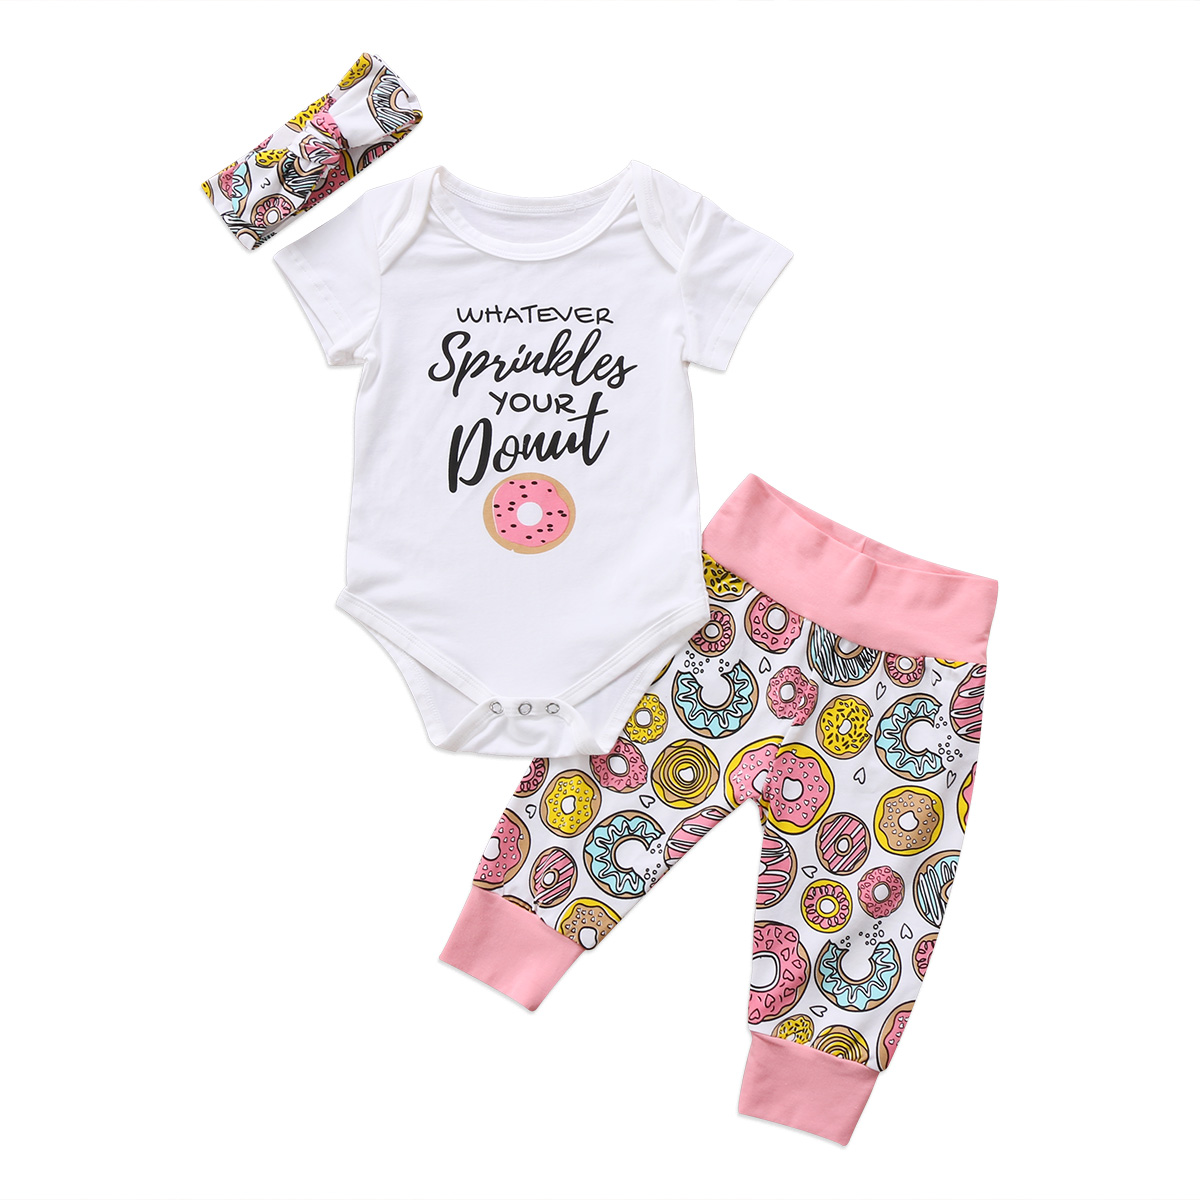 bbcfc57314 Buy baby donut and get free shipping on AliExpress.com